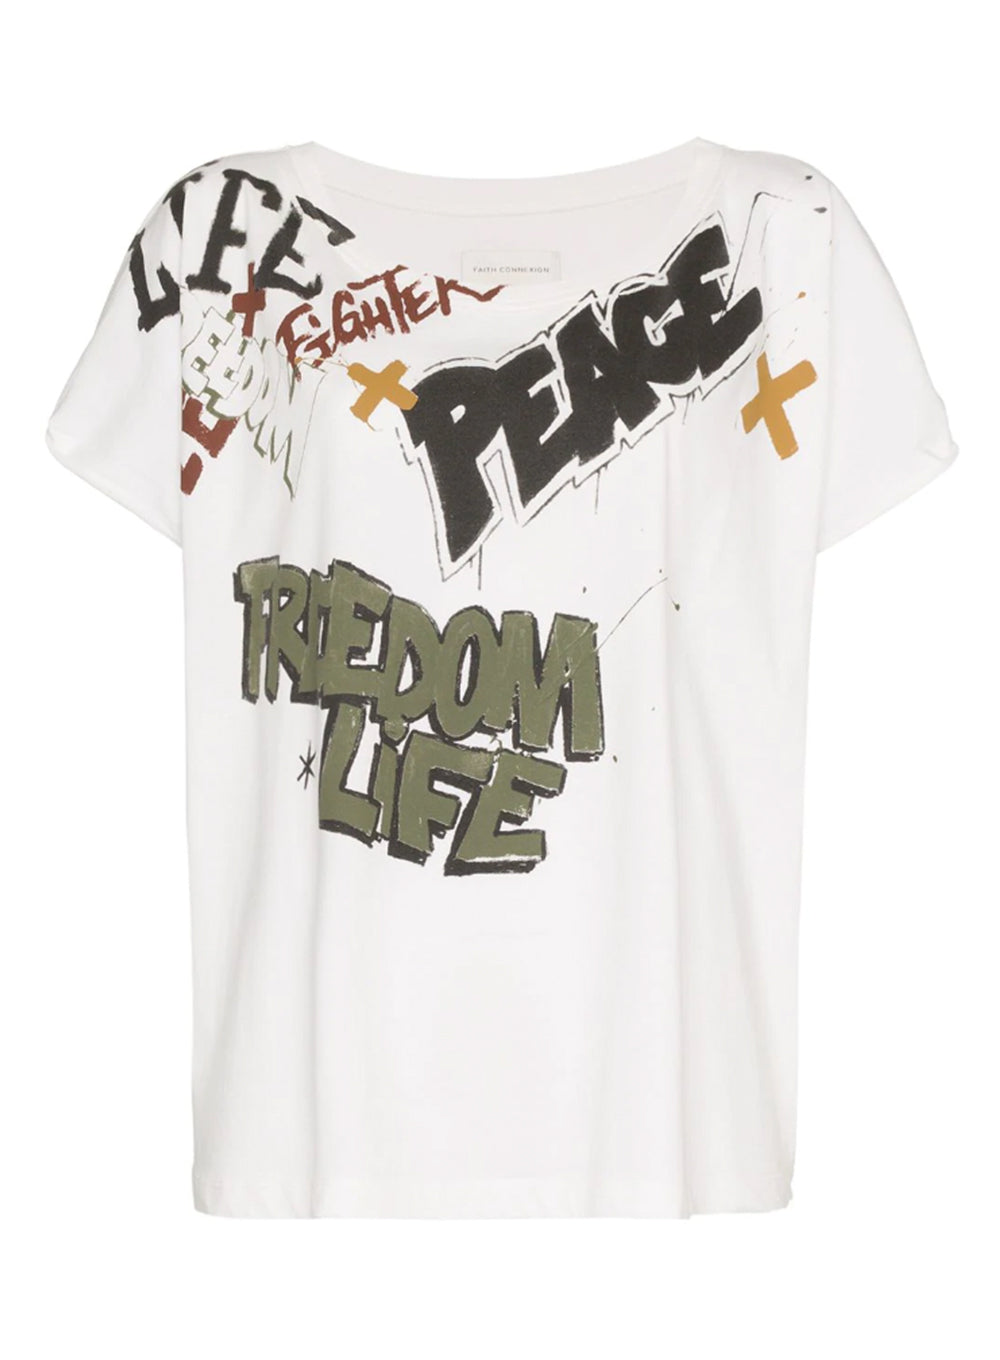 FAITH CONNEXION | Short Sleeve 'Freedom Life Peace' Graffiti Art Graphic T-Shirt